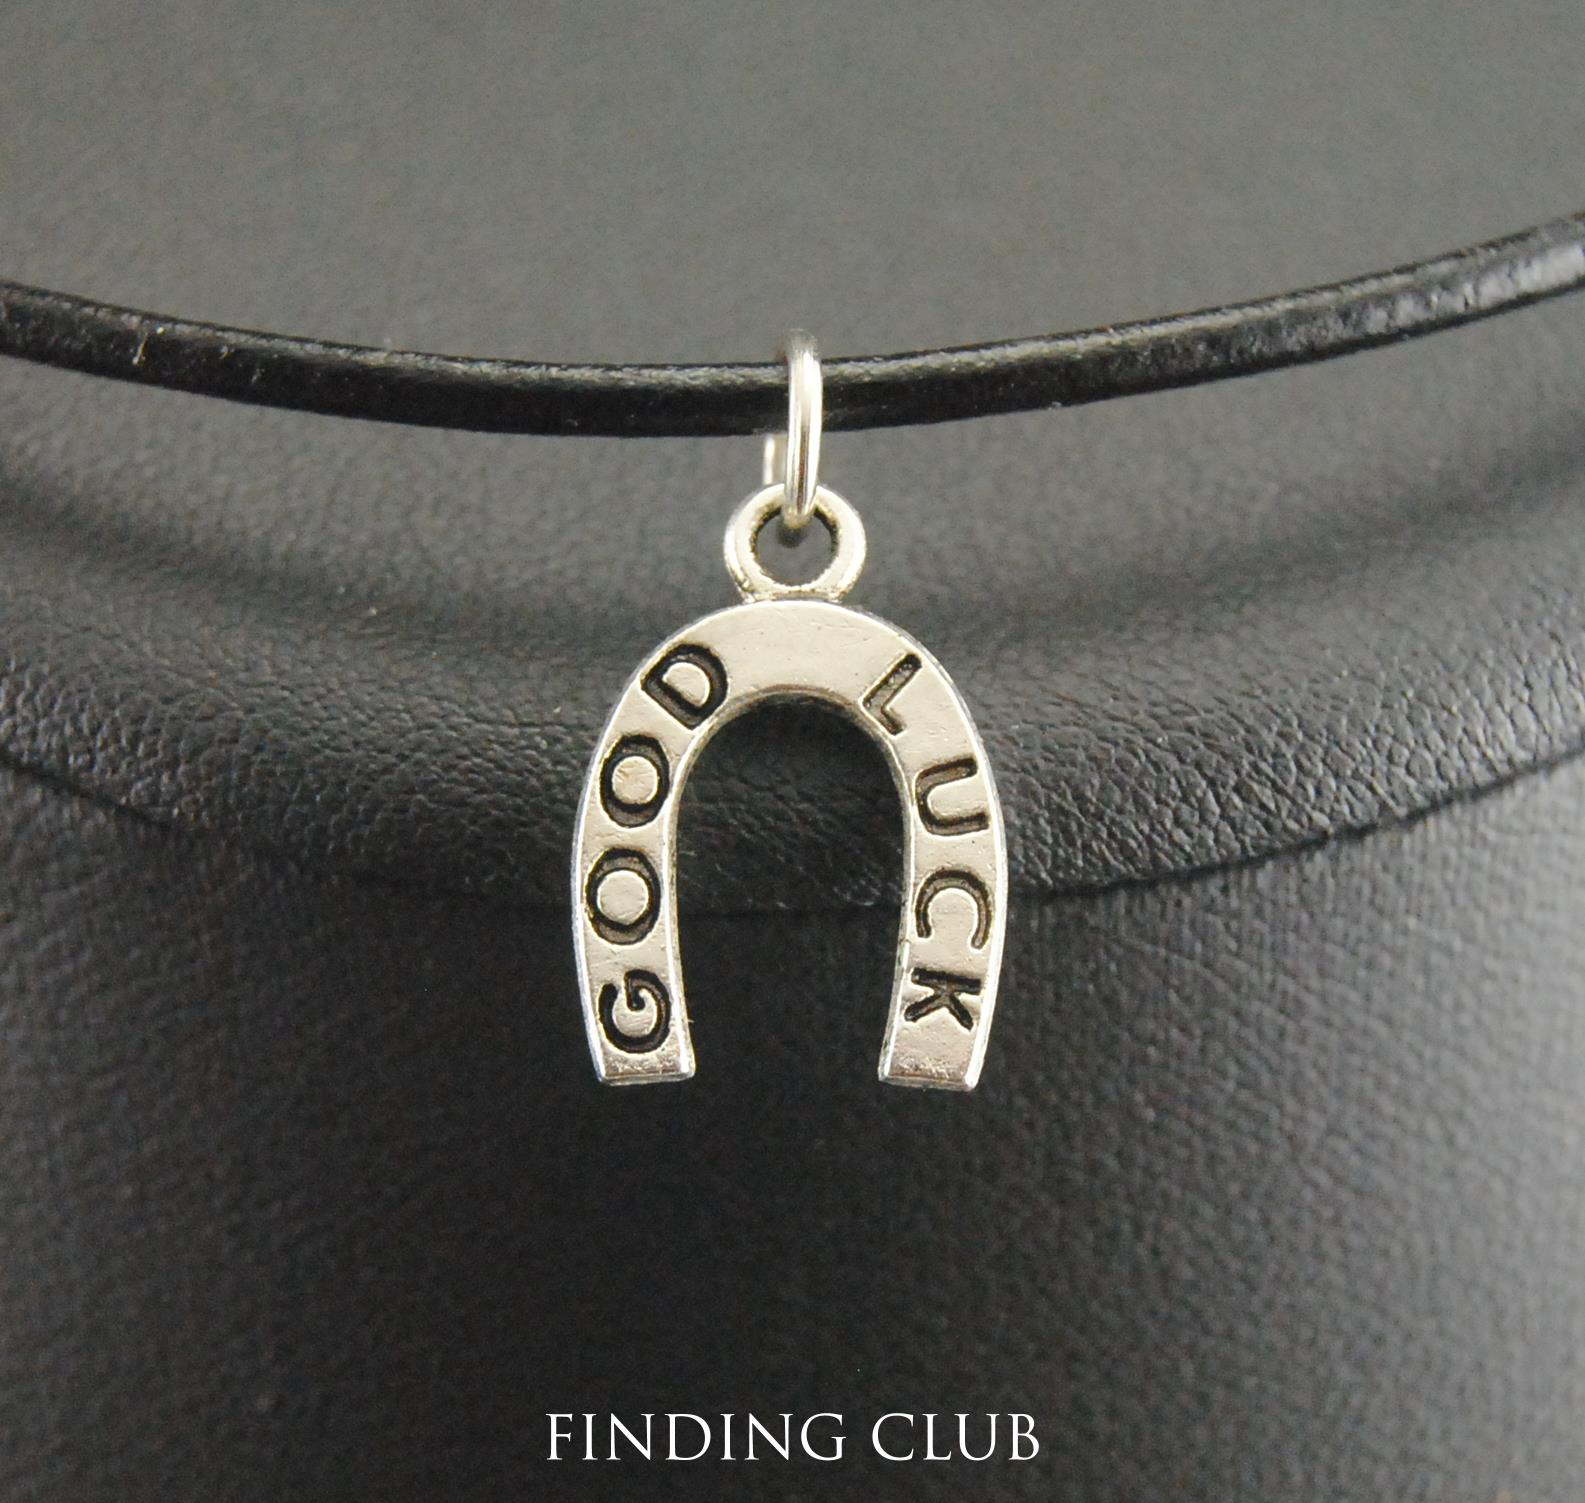 New Fashion Zinc Alloy Good Luck horseshoe charm Necklaces leather rope jewelry for men and women E086